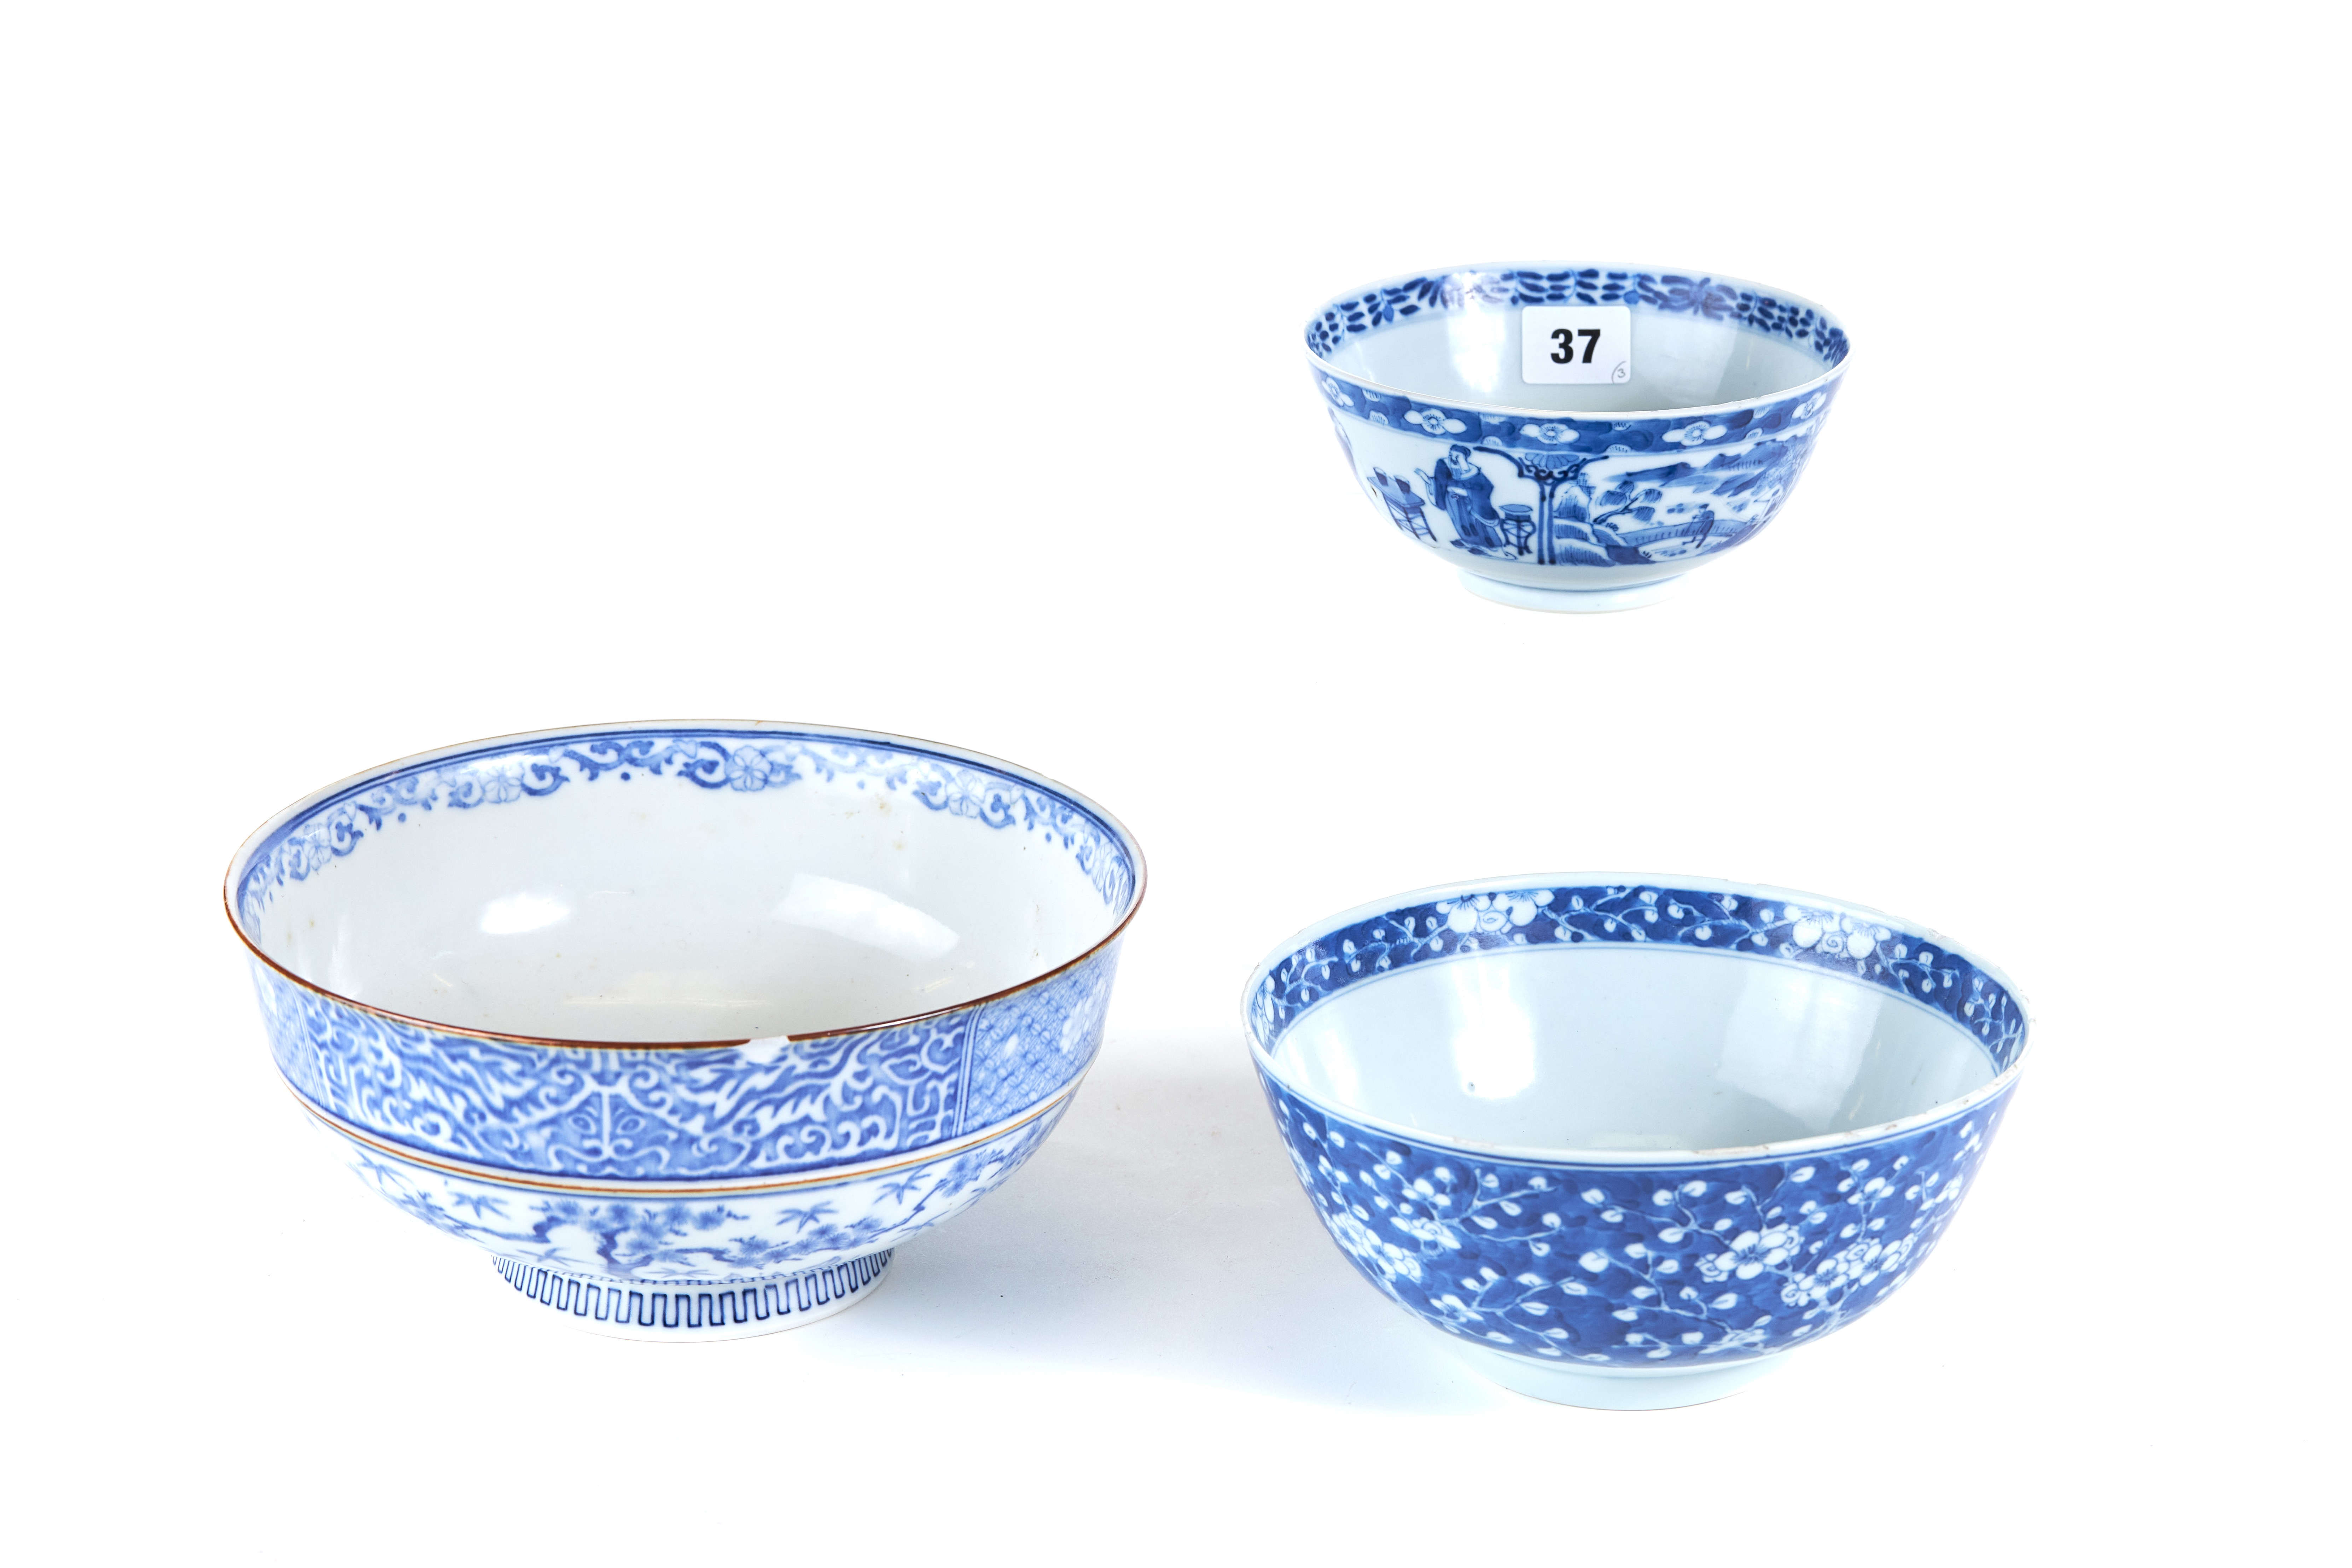 A 19TH CENTURY CHINESE PORCELAIN BOWL decorated in underglaze blue with a band of continuous figure